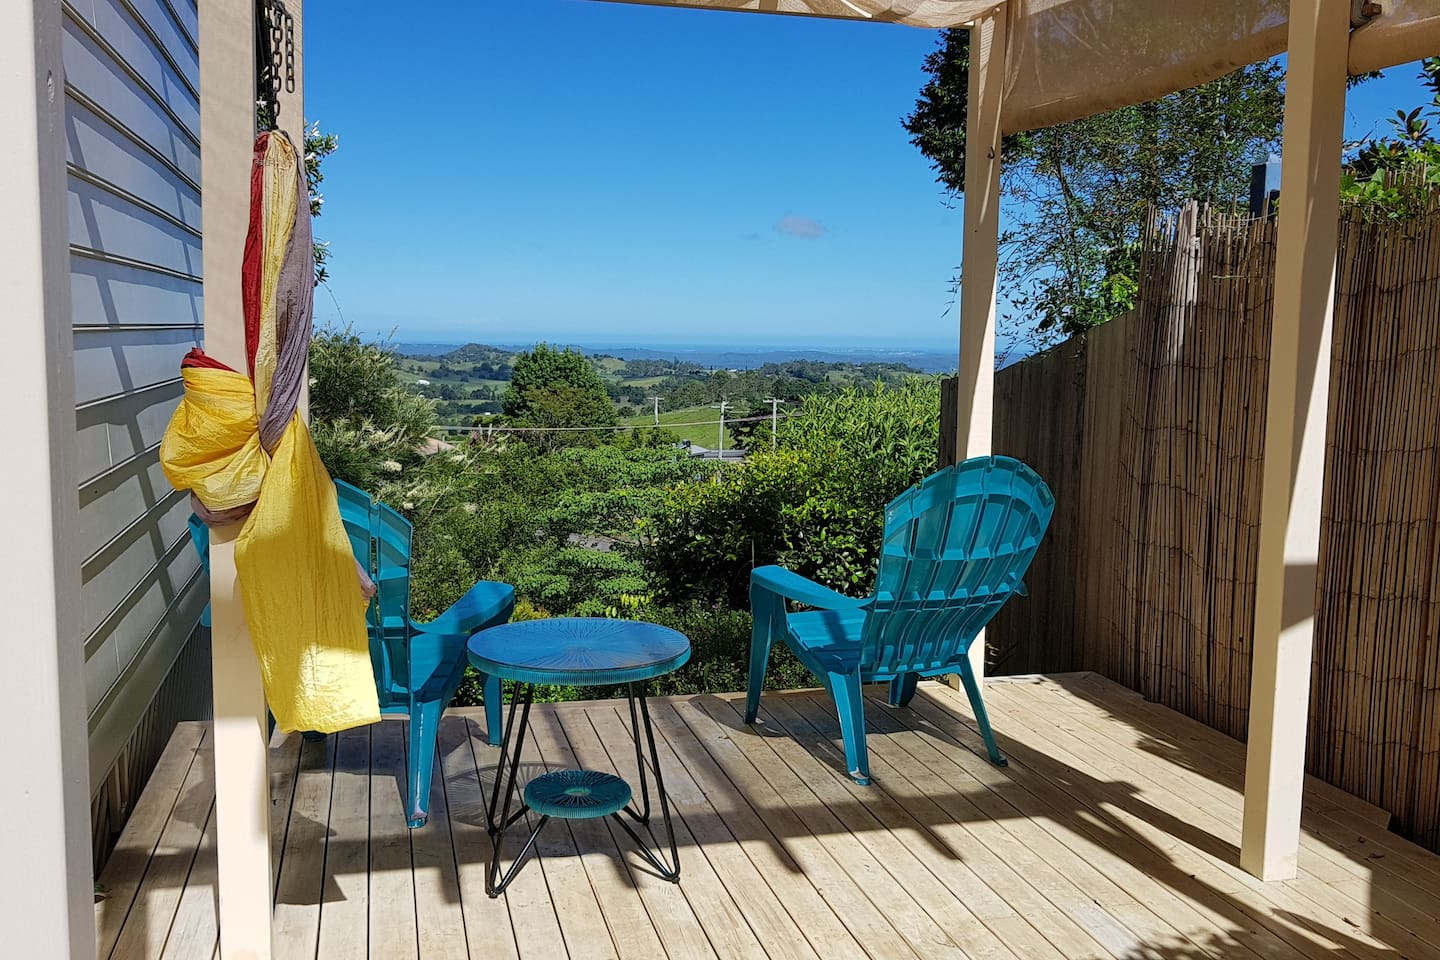 This is our gorgeous viewing deck, nice to relax, look at the view , enjoy a wine or relax in the hammock